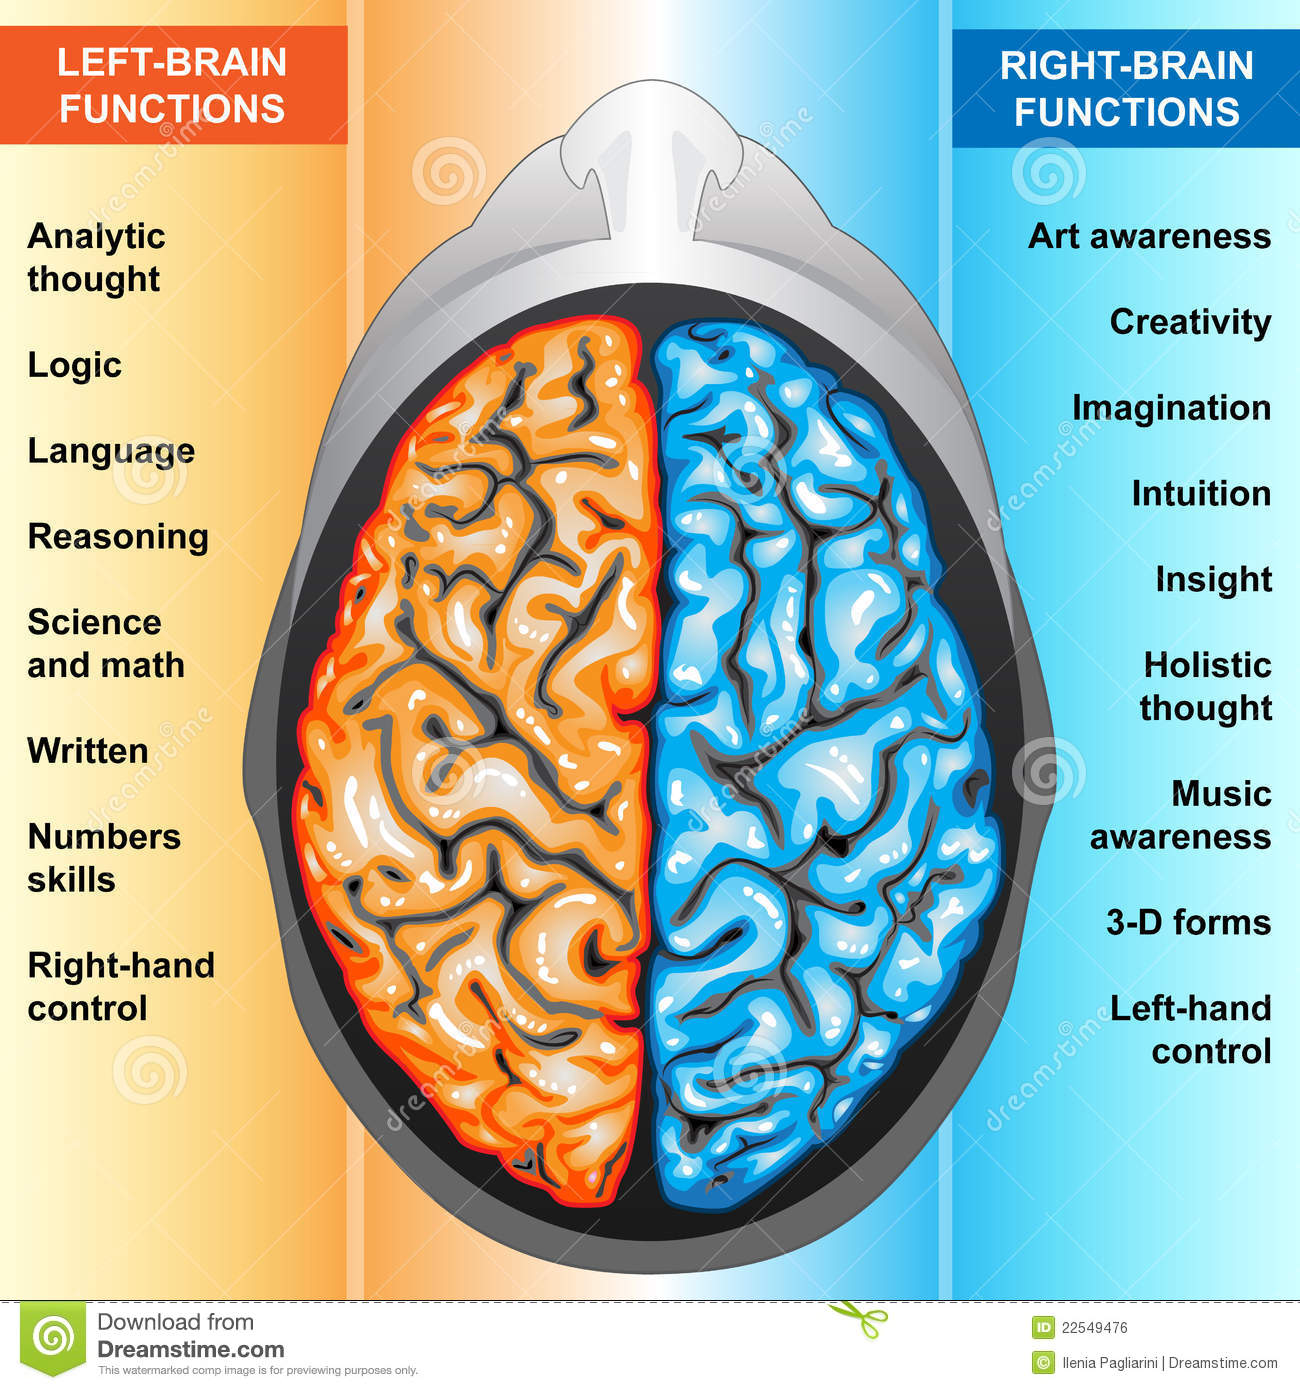 Human brain left and right functions stock illustration download human brain left and right functions stock illustration illustration of anatomy cerebellum ccuart Gallery